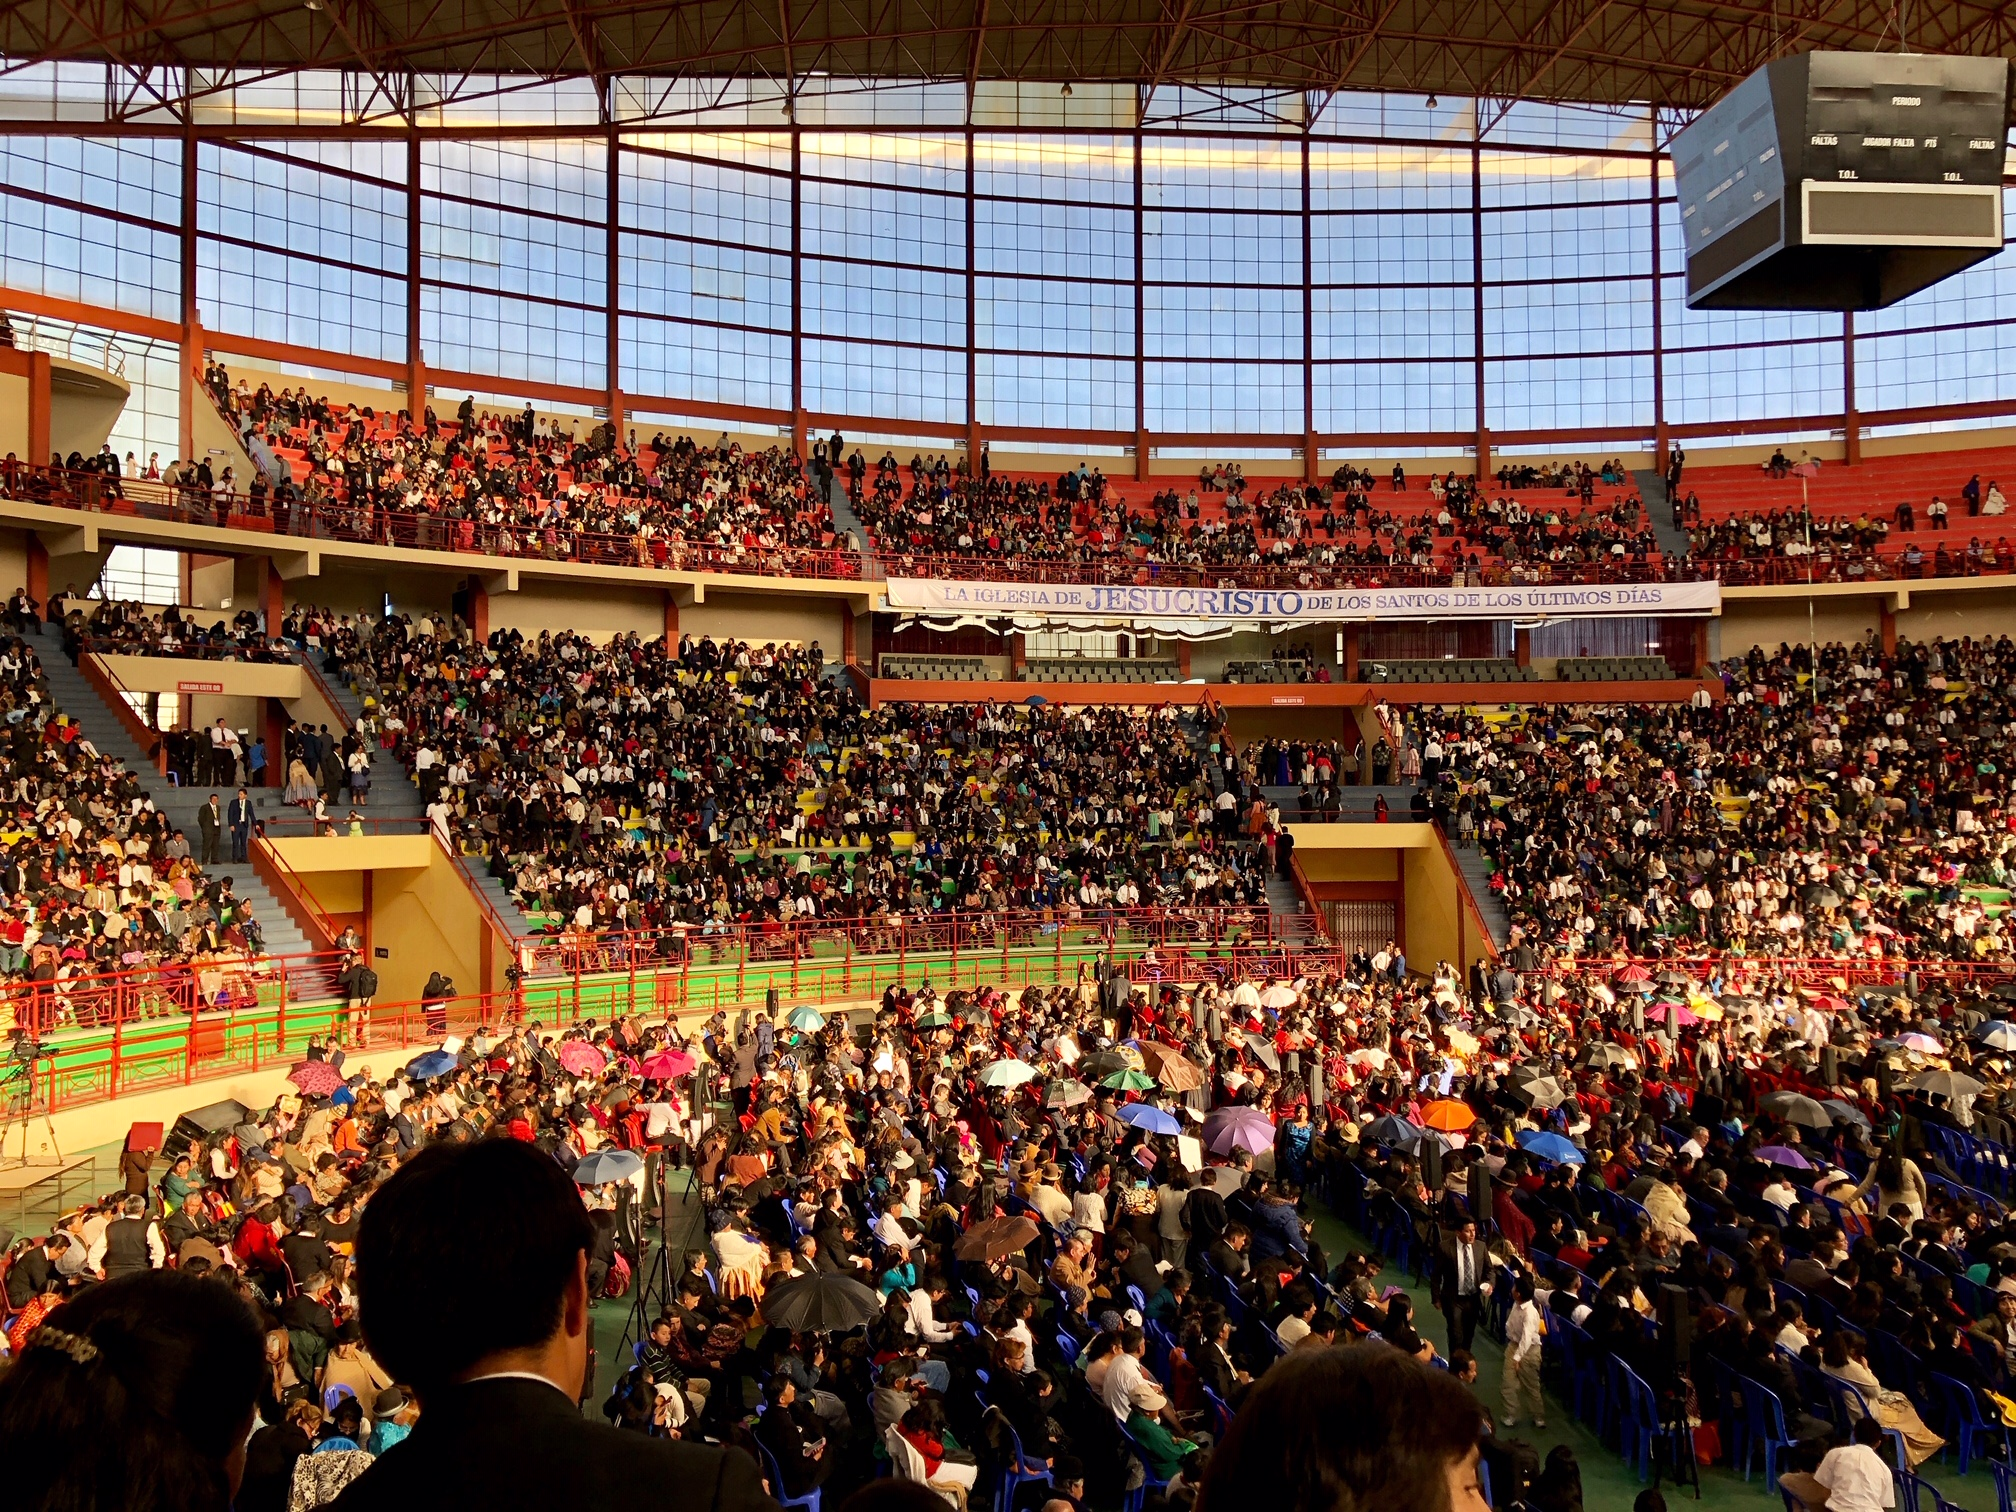 Crowds fill the Polideportivo Heroes de Octubre in El Alto on Sunday, Oct. 21 to hear President Nelson speak.